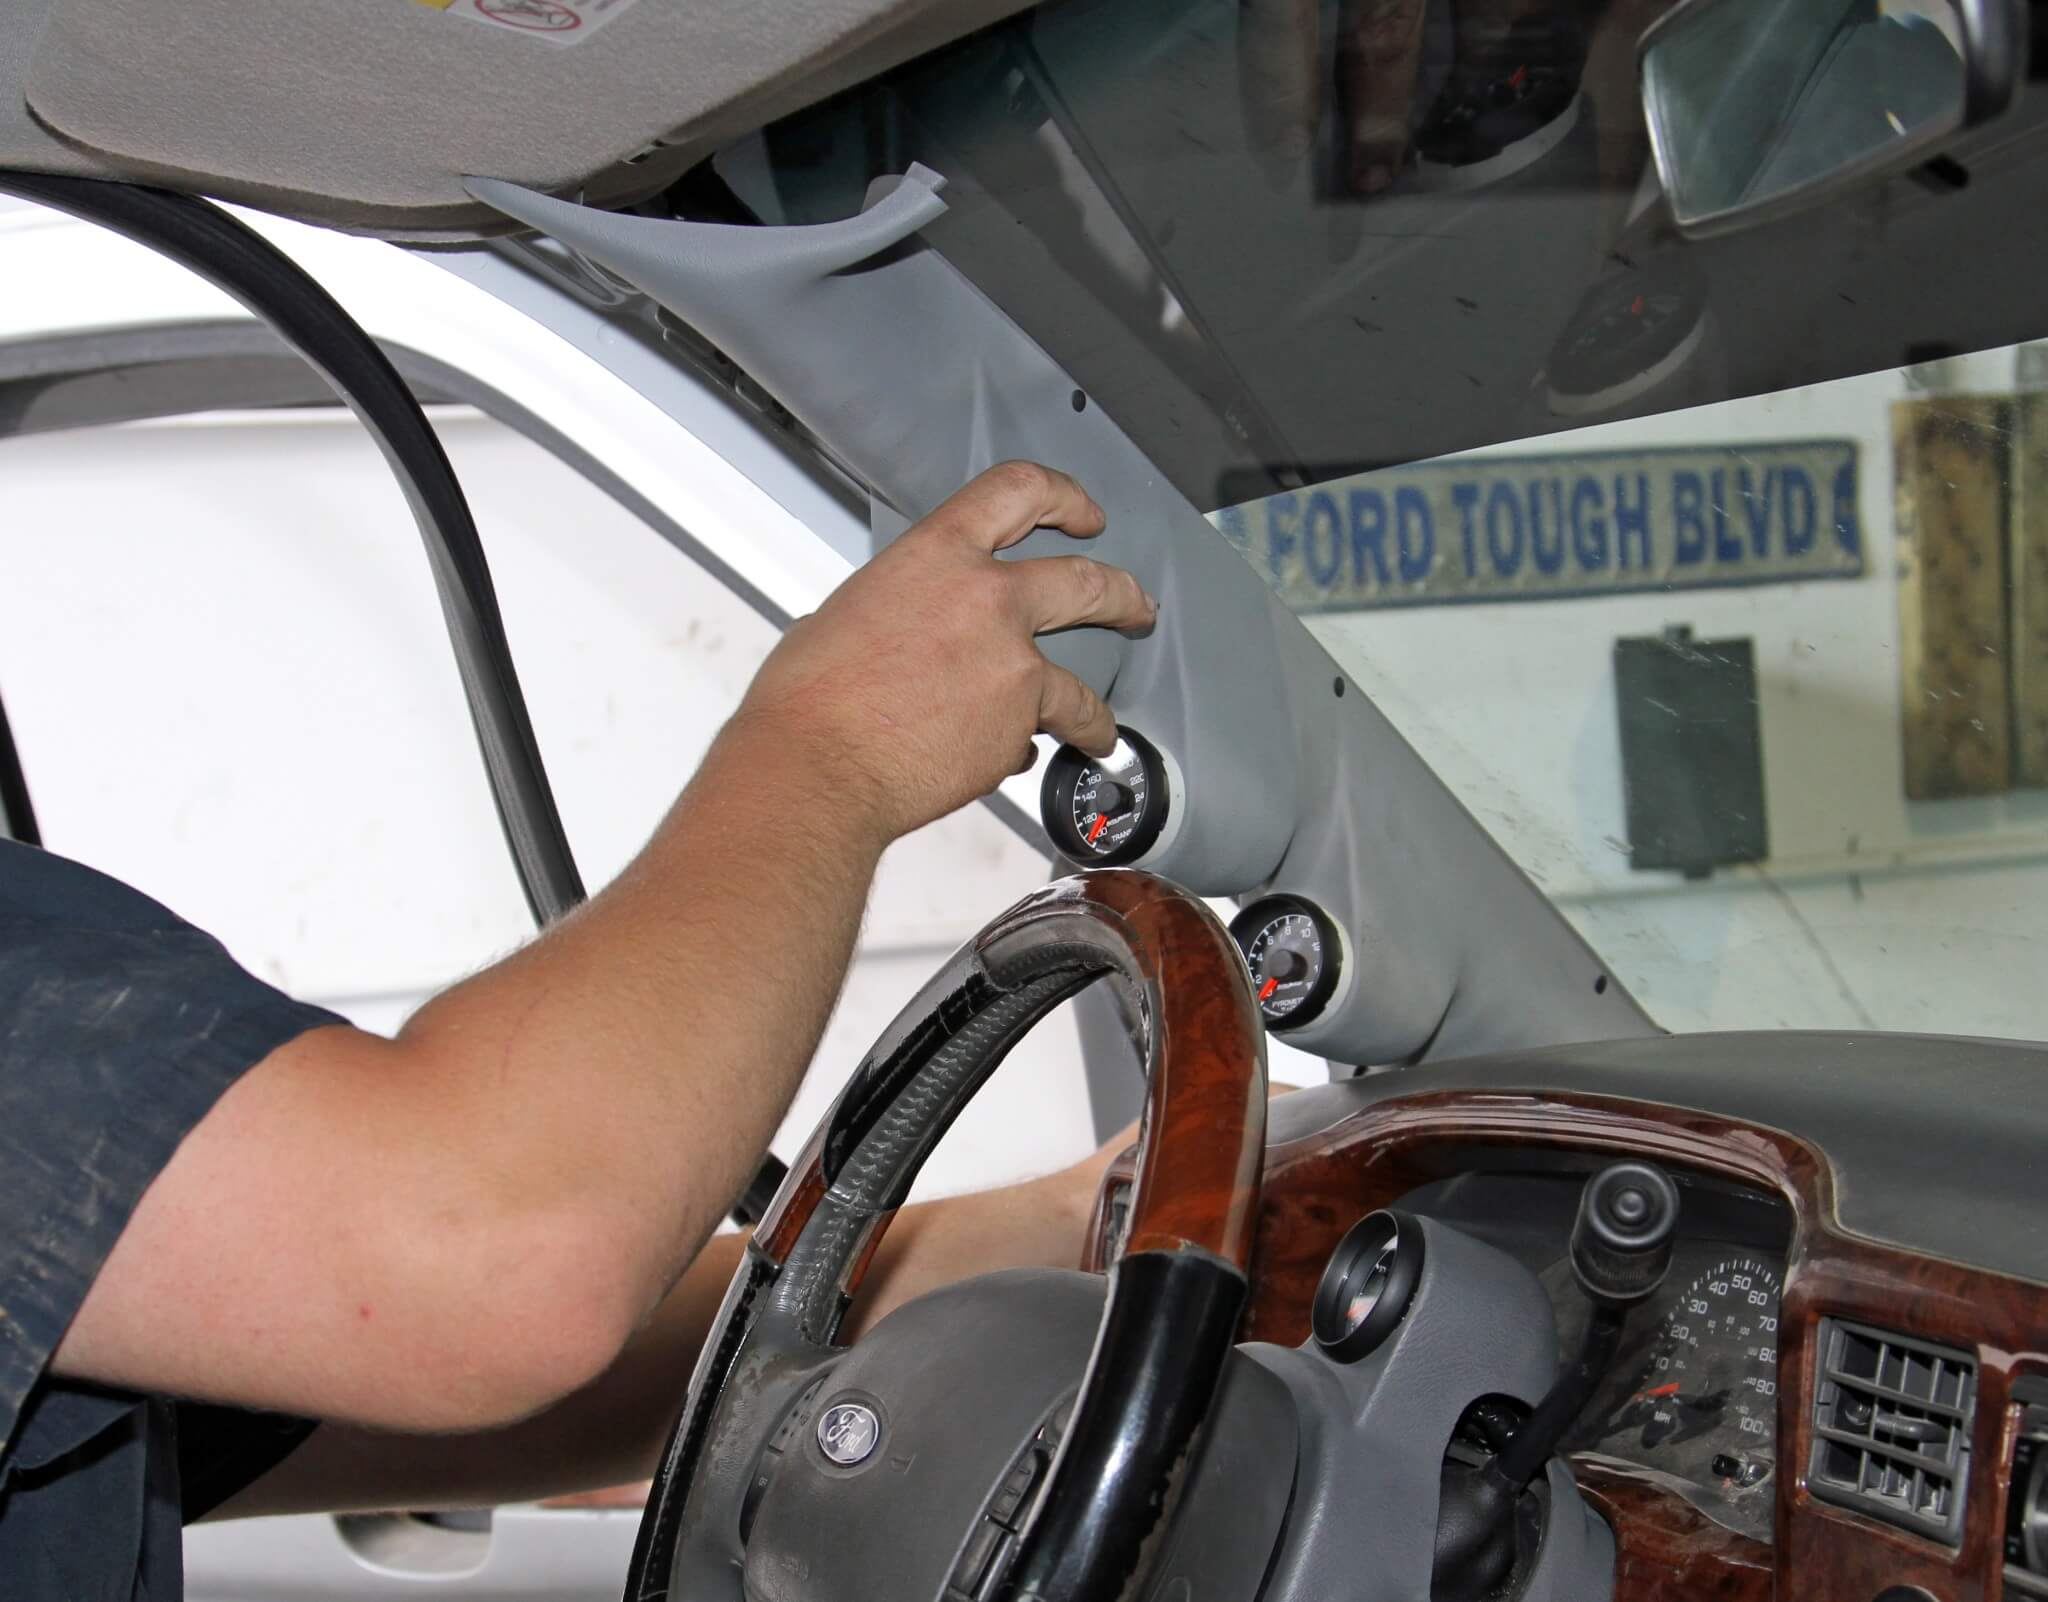 26. He then routes the harnesses through the A-pillar joint near the dash and installs the pod. He adjusts the angle of the gauges and presses them fully into the pod once it's installed to verify the angle from the driver's seat.